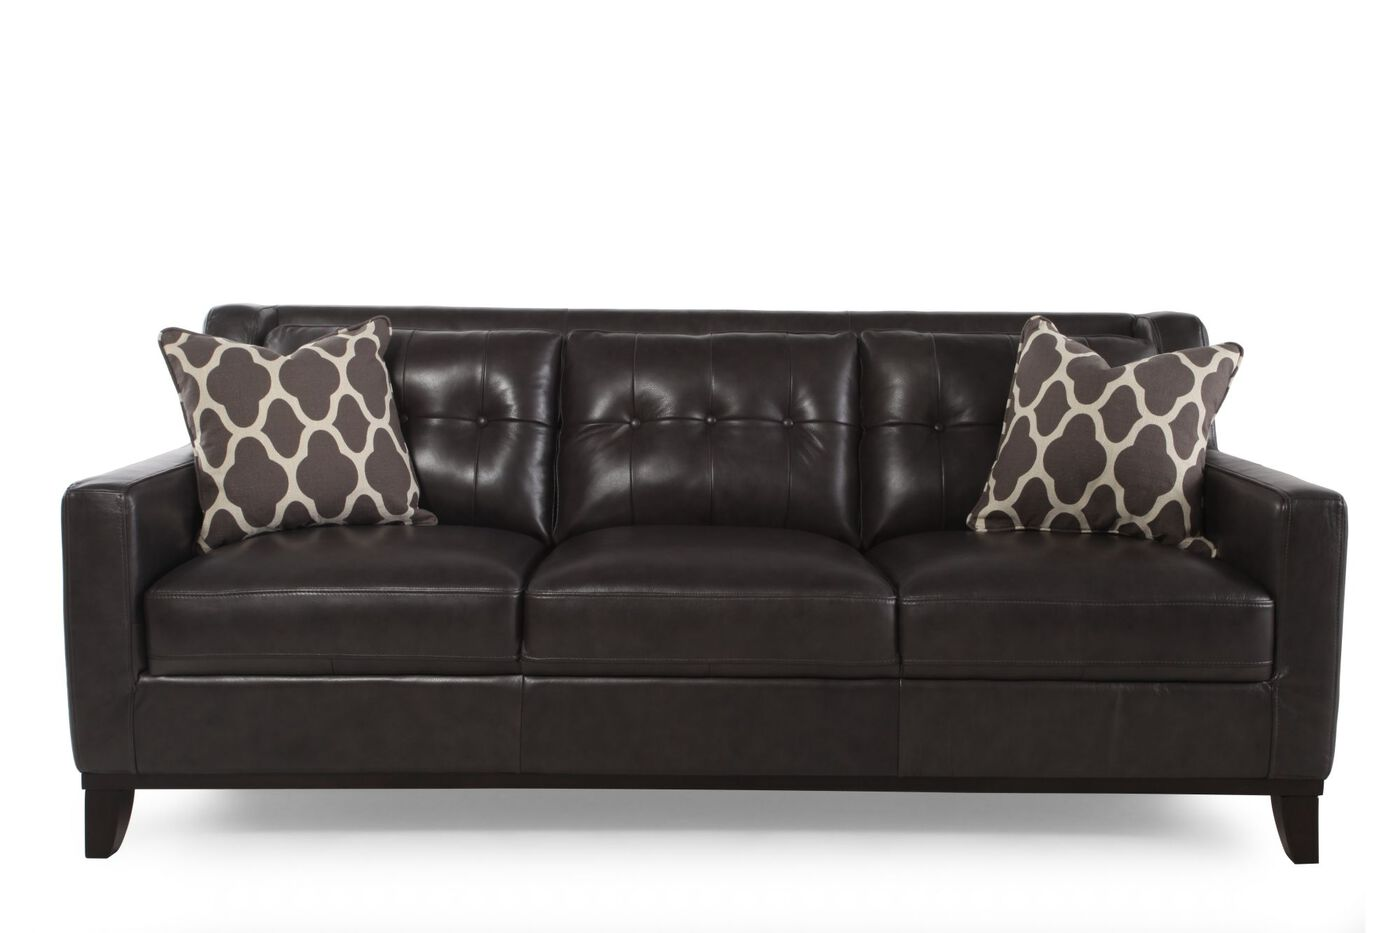 Boulevard Grey Leather Sofa. Boulevard Grey Leather Sofa   Mathis Brothers Furniture